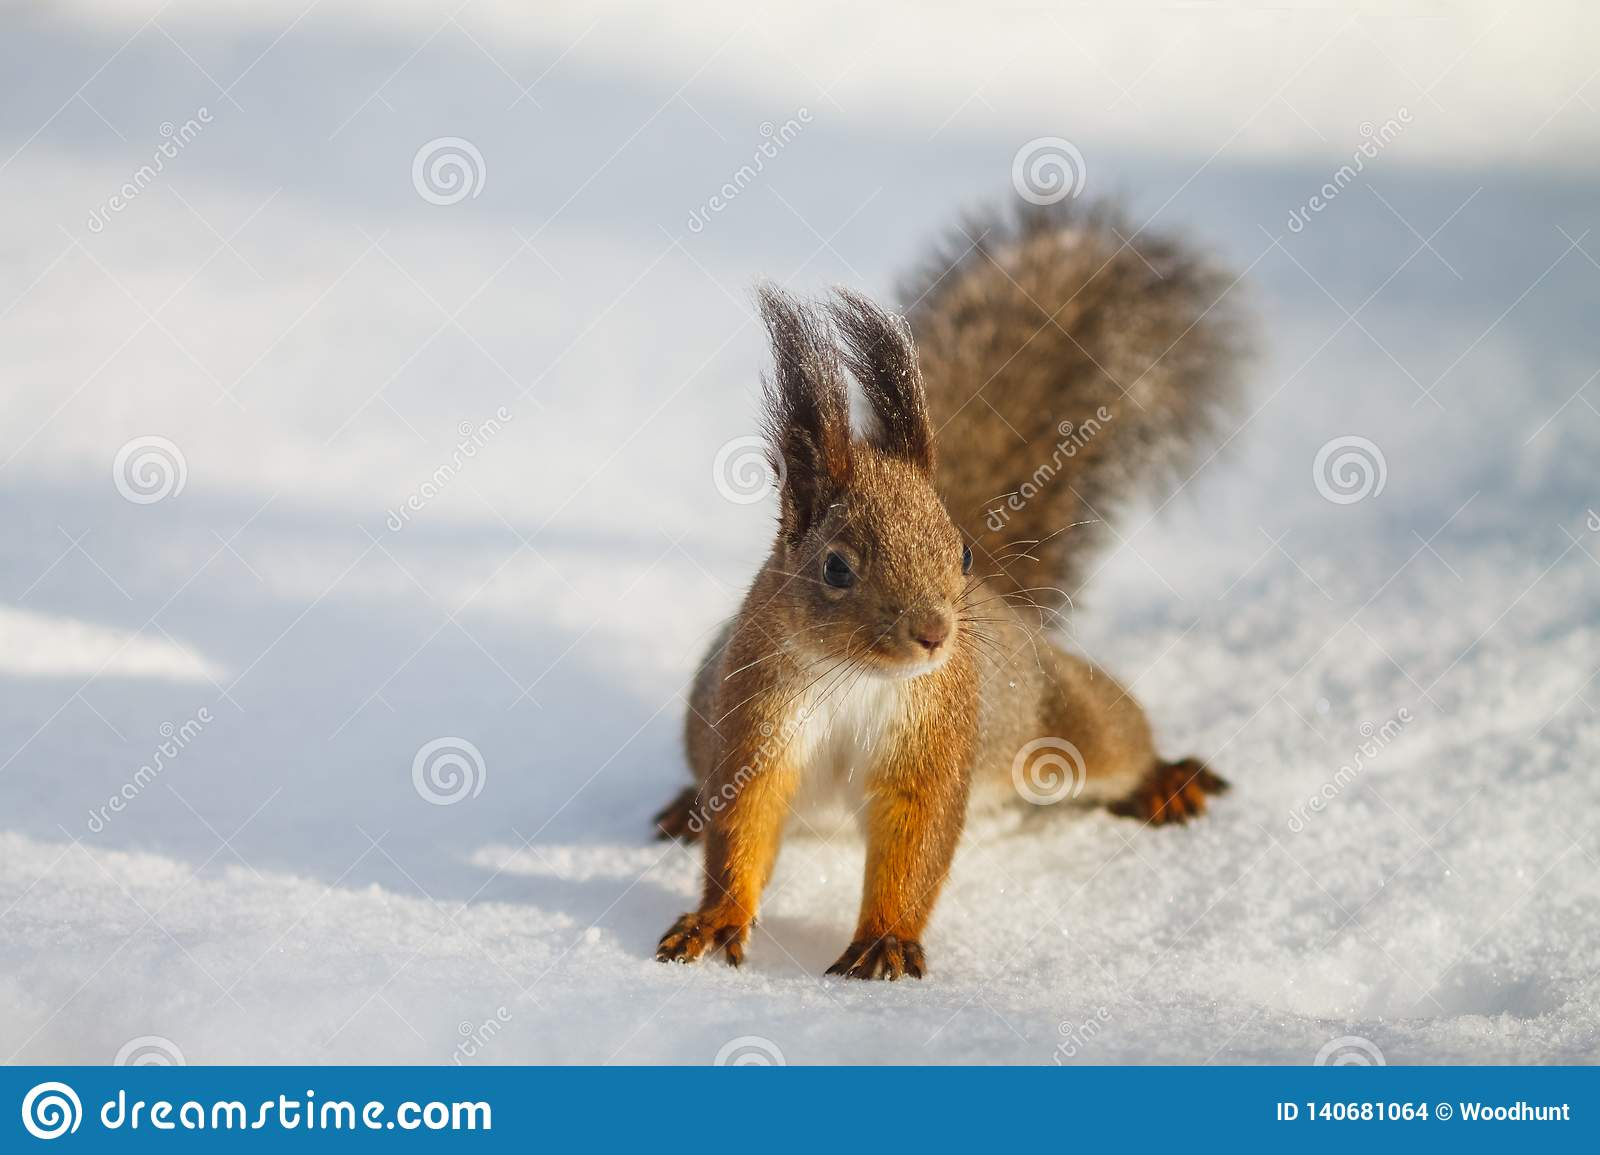 Red squirrel sits on the white snow alone and looks to the right